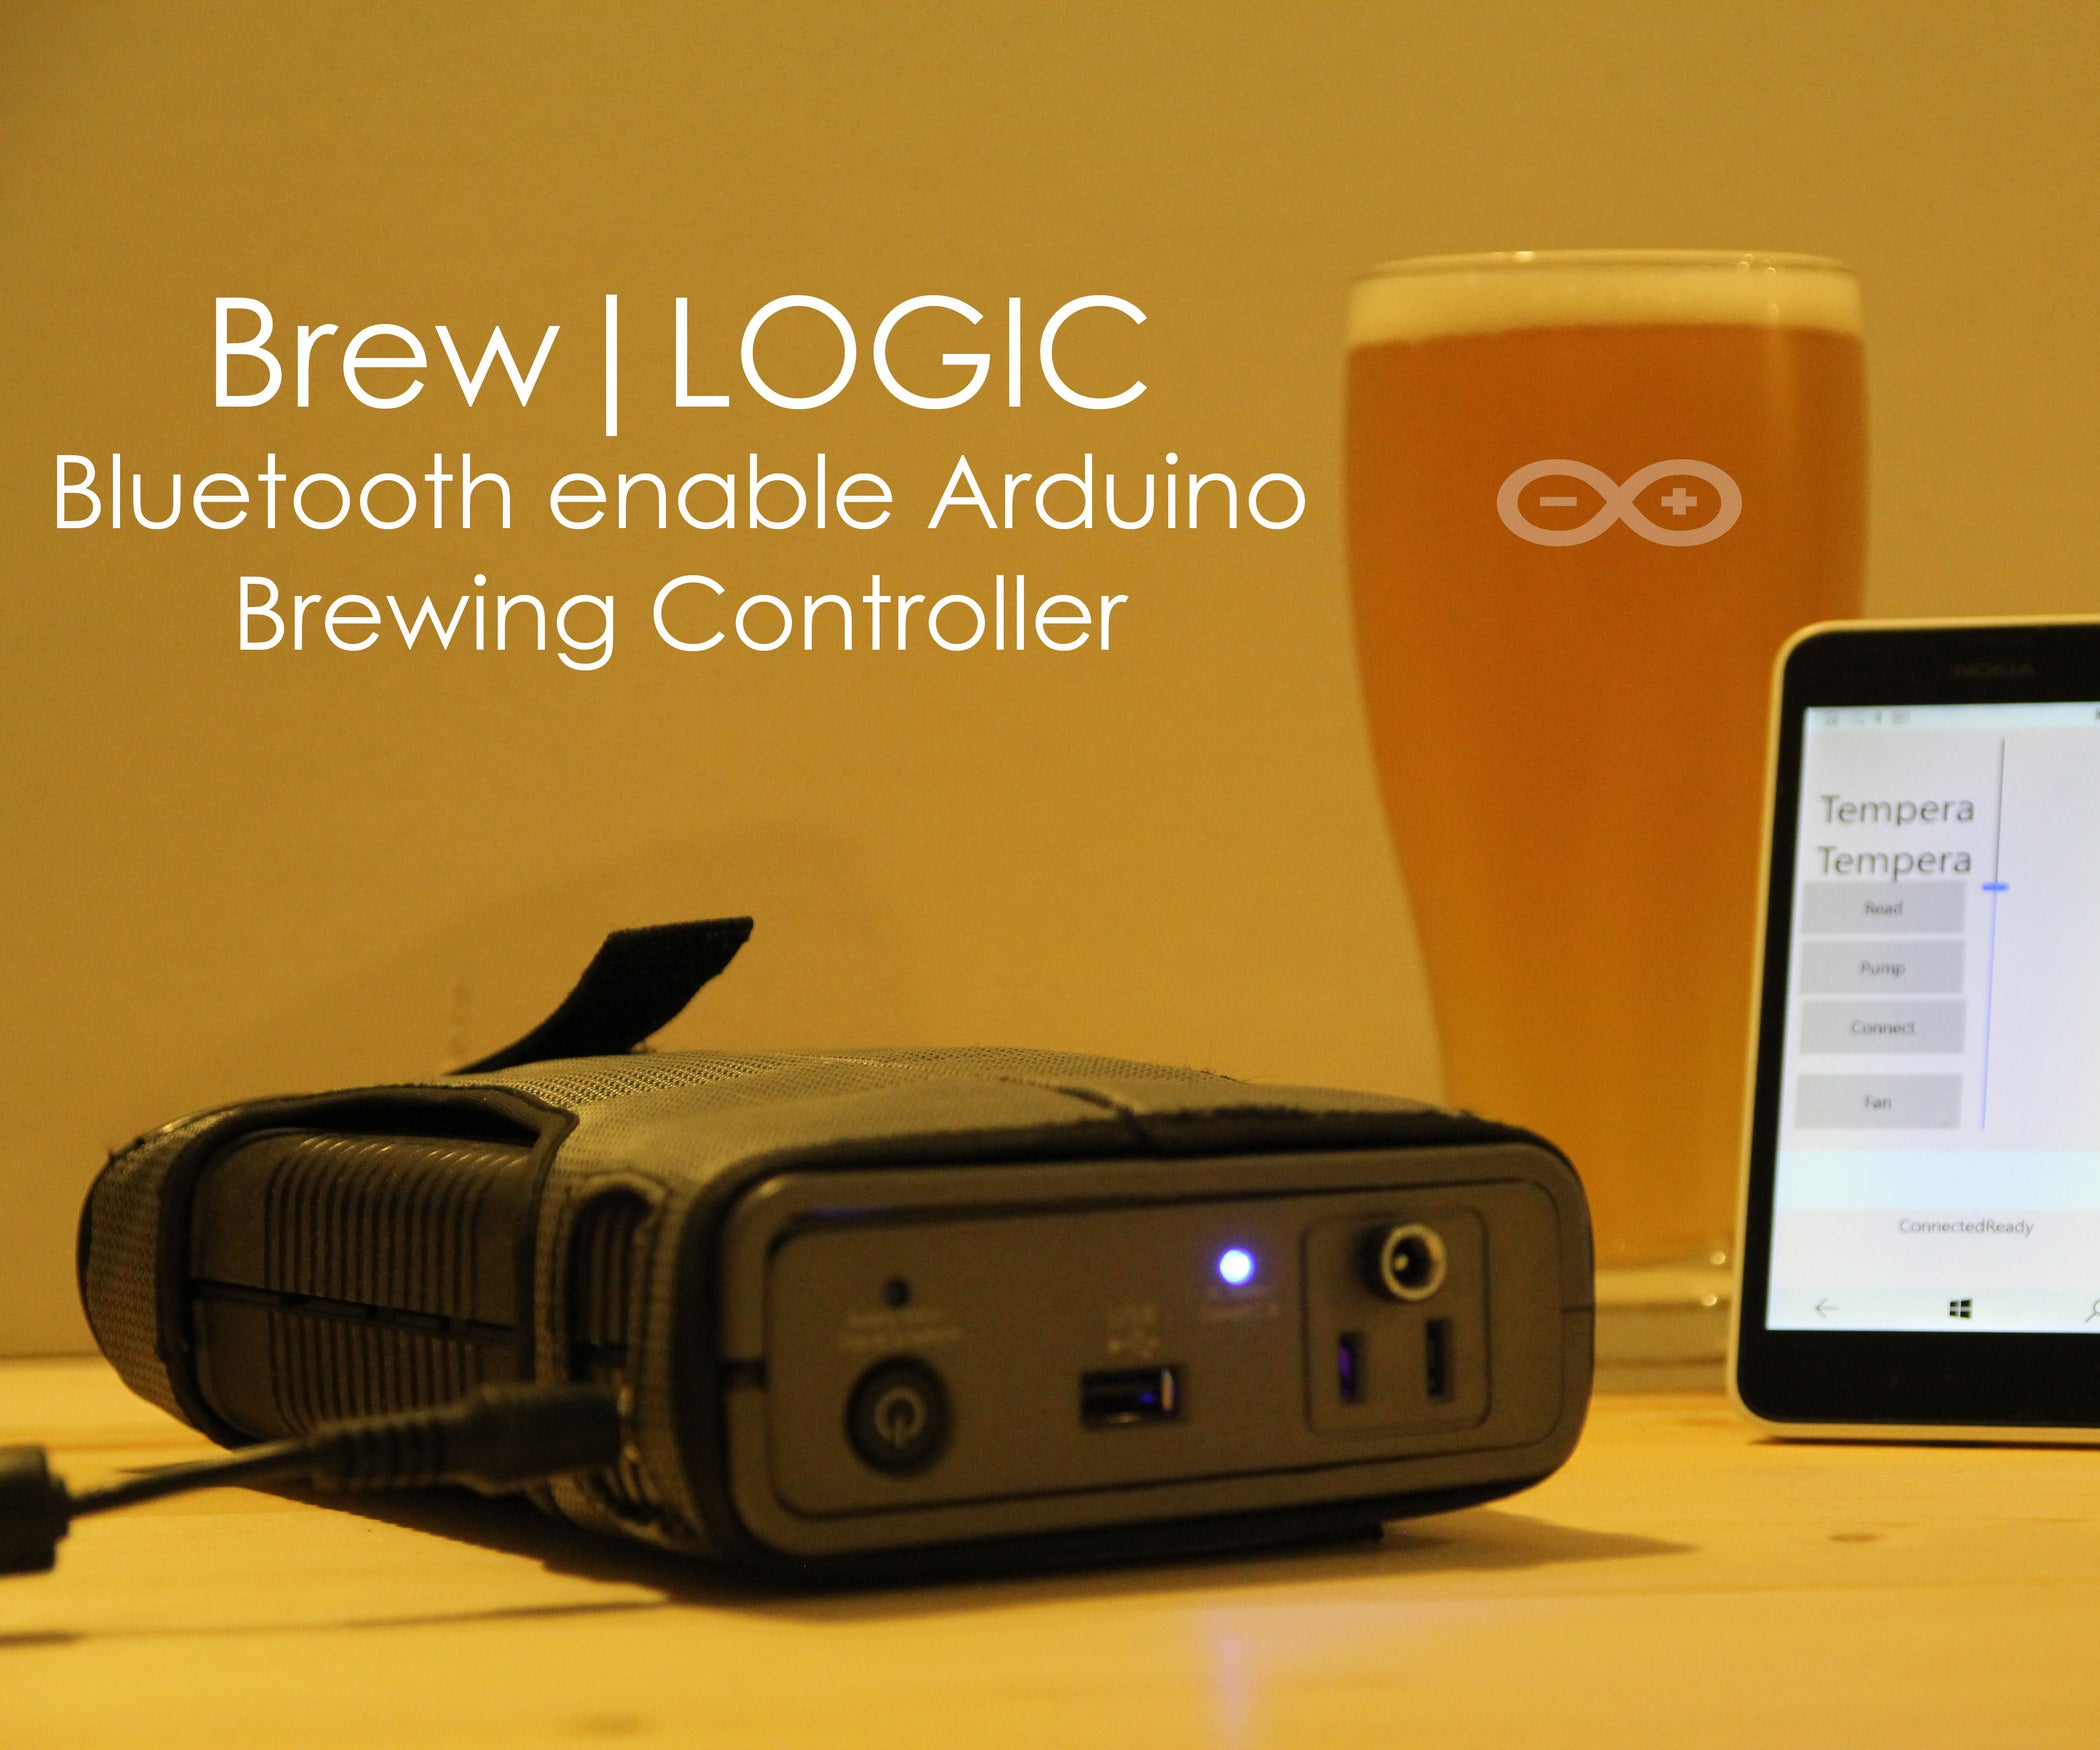 QnA VBage Brew|LOGIC - Bluetooth Enabled Arduino Brewing Controller